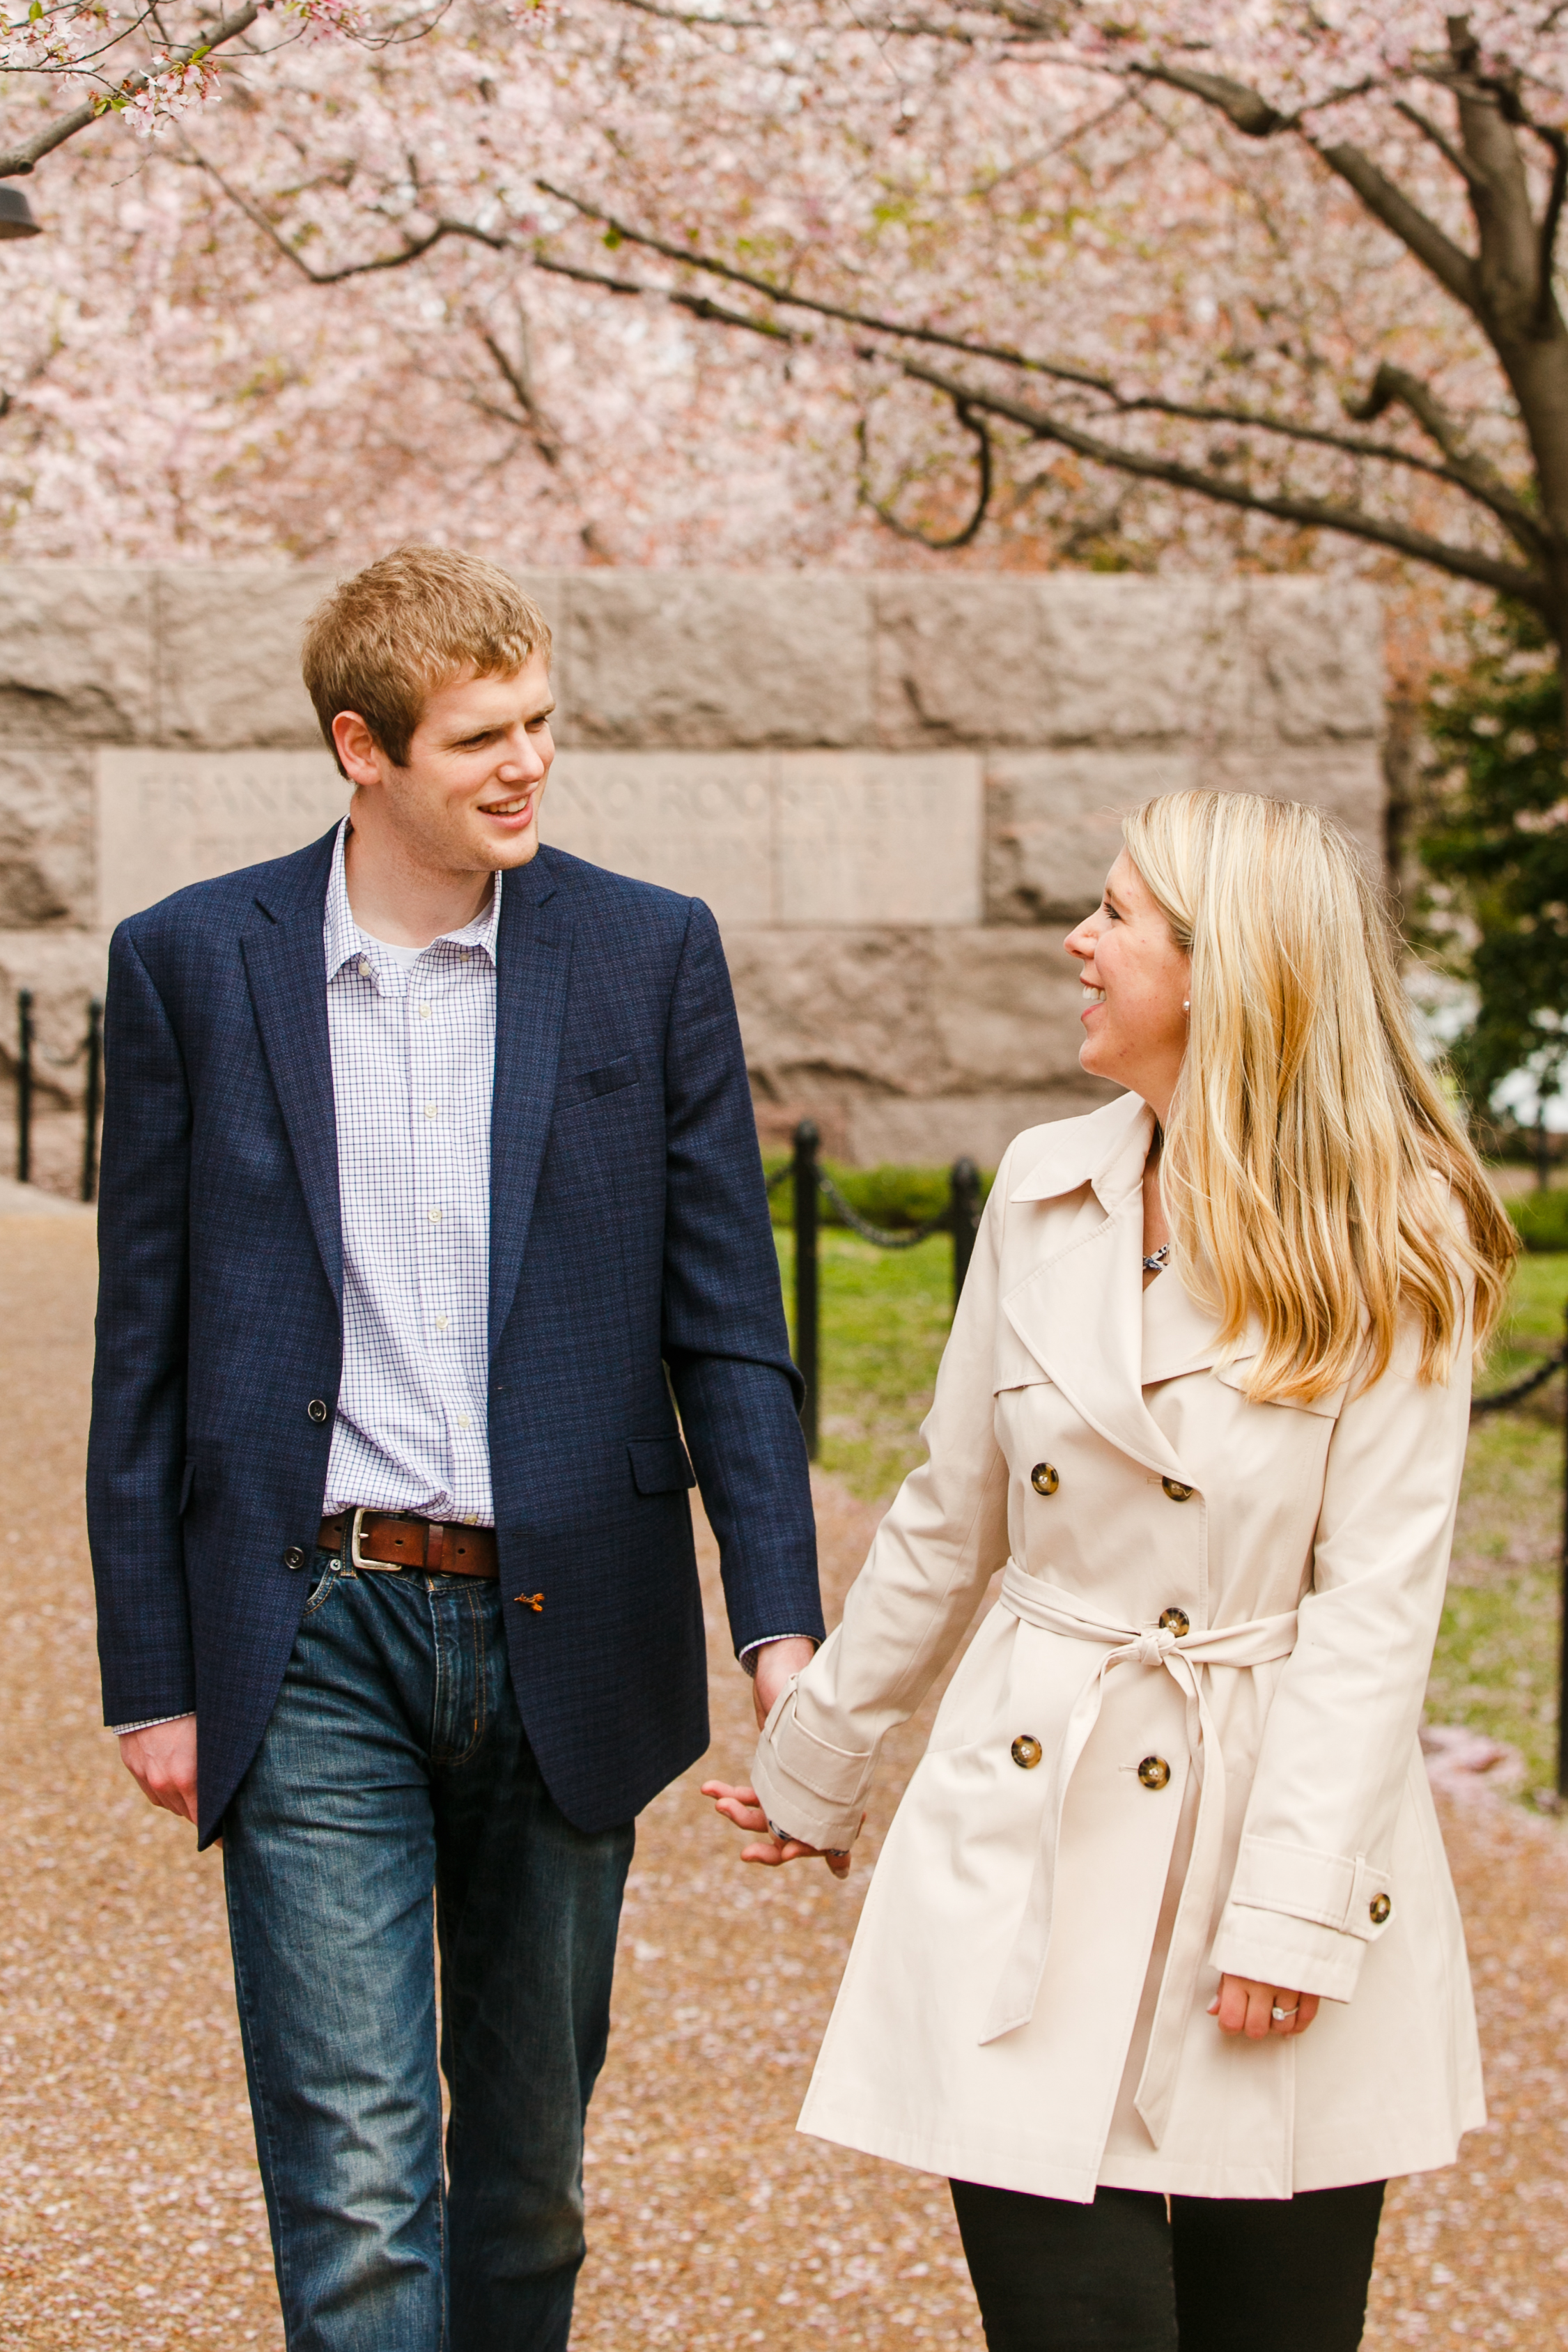 Washington-DC-Cherry-Blossom-Surprise-Proposal